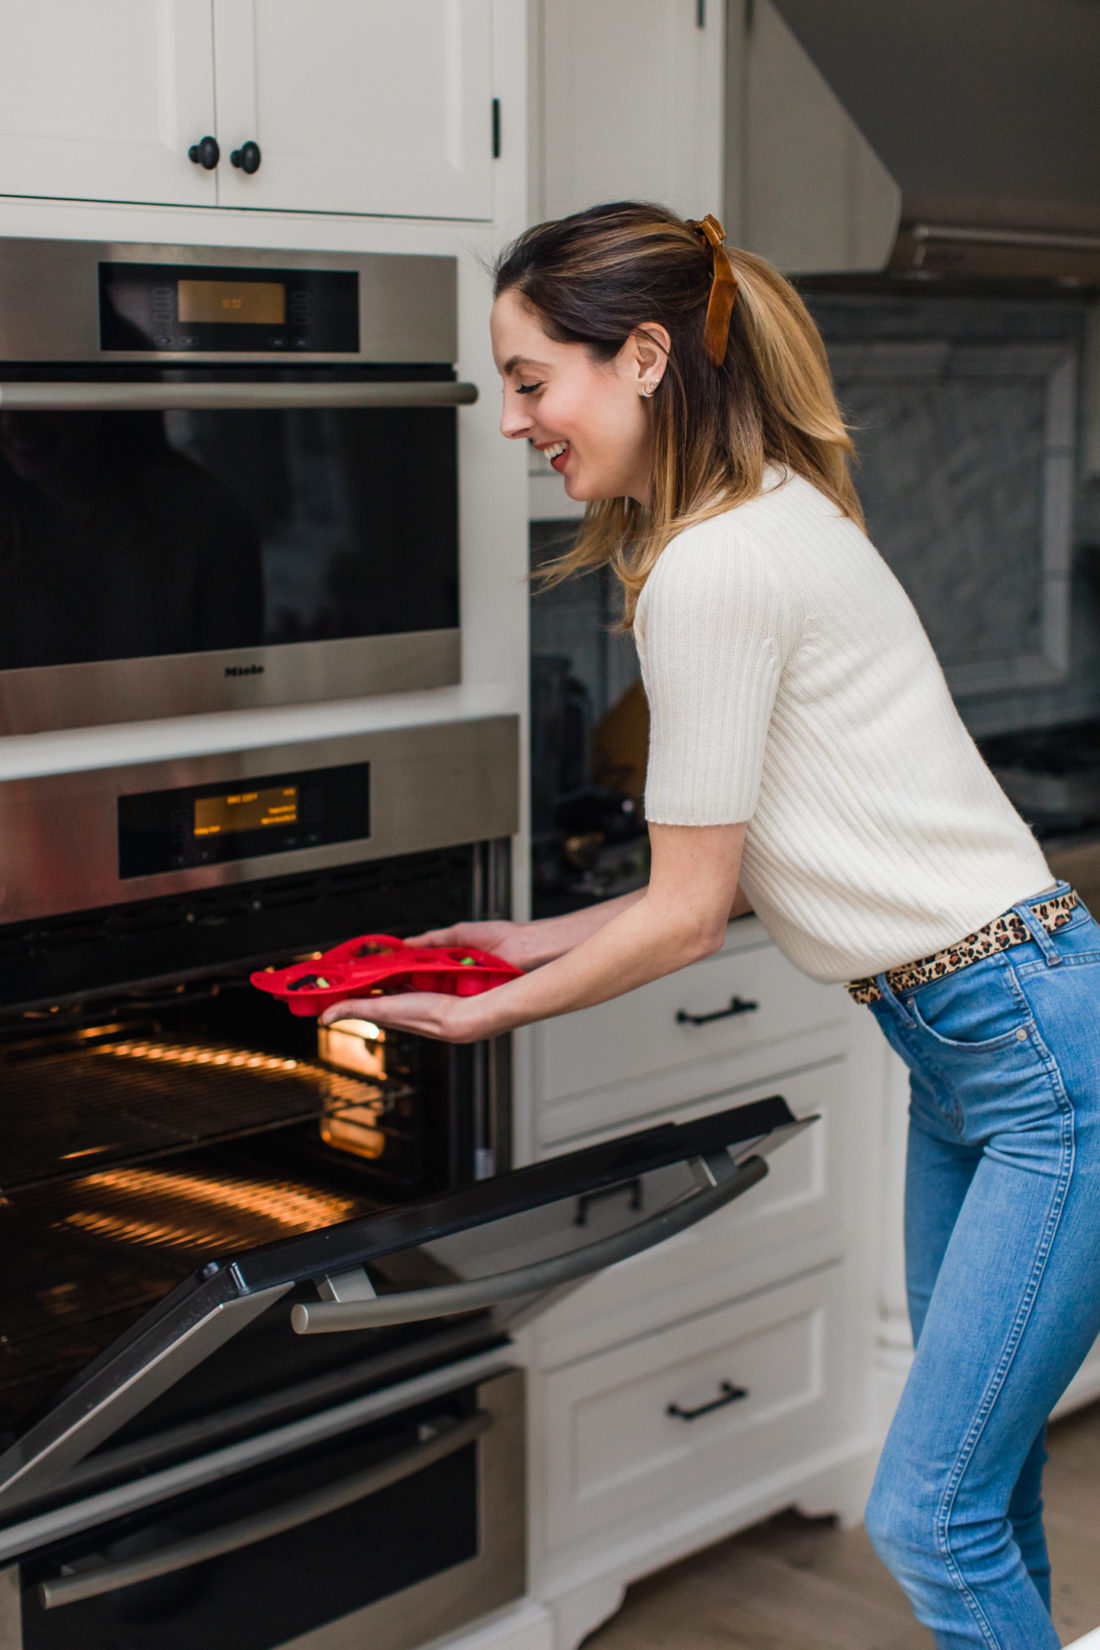 Eva Amurri Martino wears jeans and white sweater top and puts a heart shaped mold of crayons in to the oven